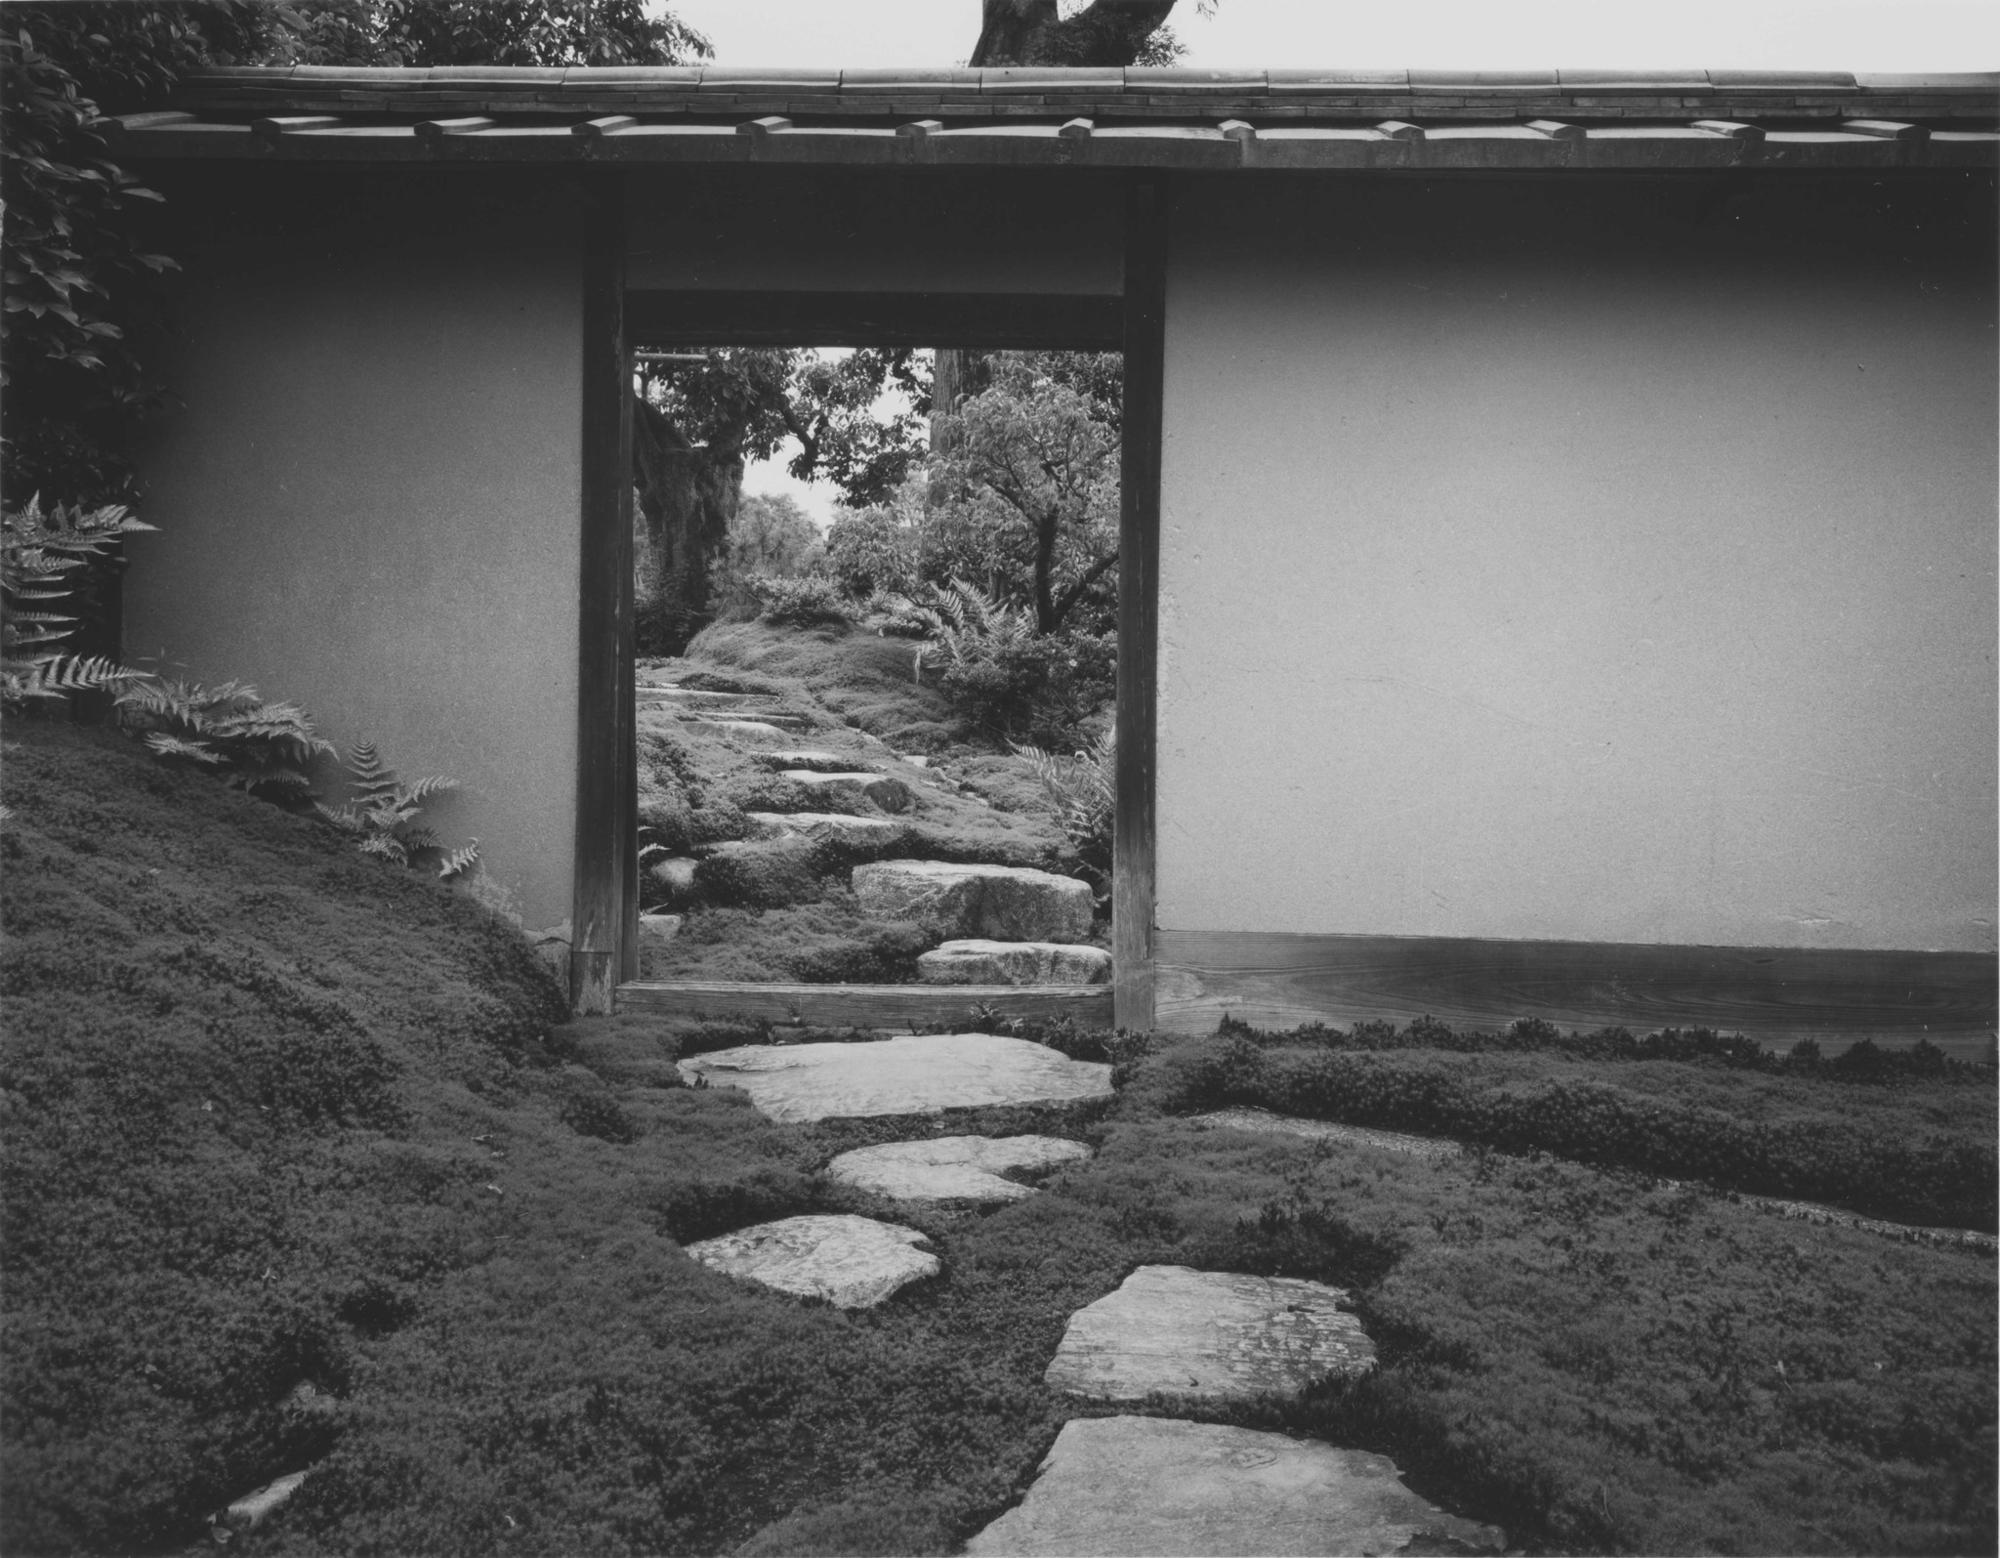 Stepping stones from the Imperial Carriage Stop to the Gepparo pavilion at Katsura Imperial Villa, near Kyoto, Japan, photographed by Yasuhiro Ishimoto, 1954, gelatin silver print.